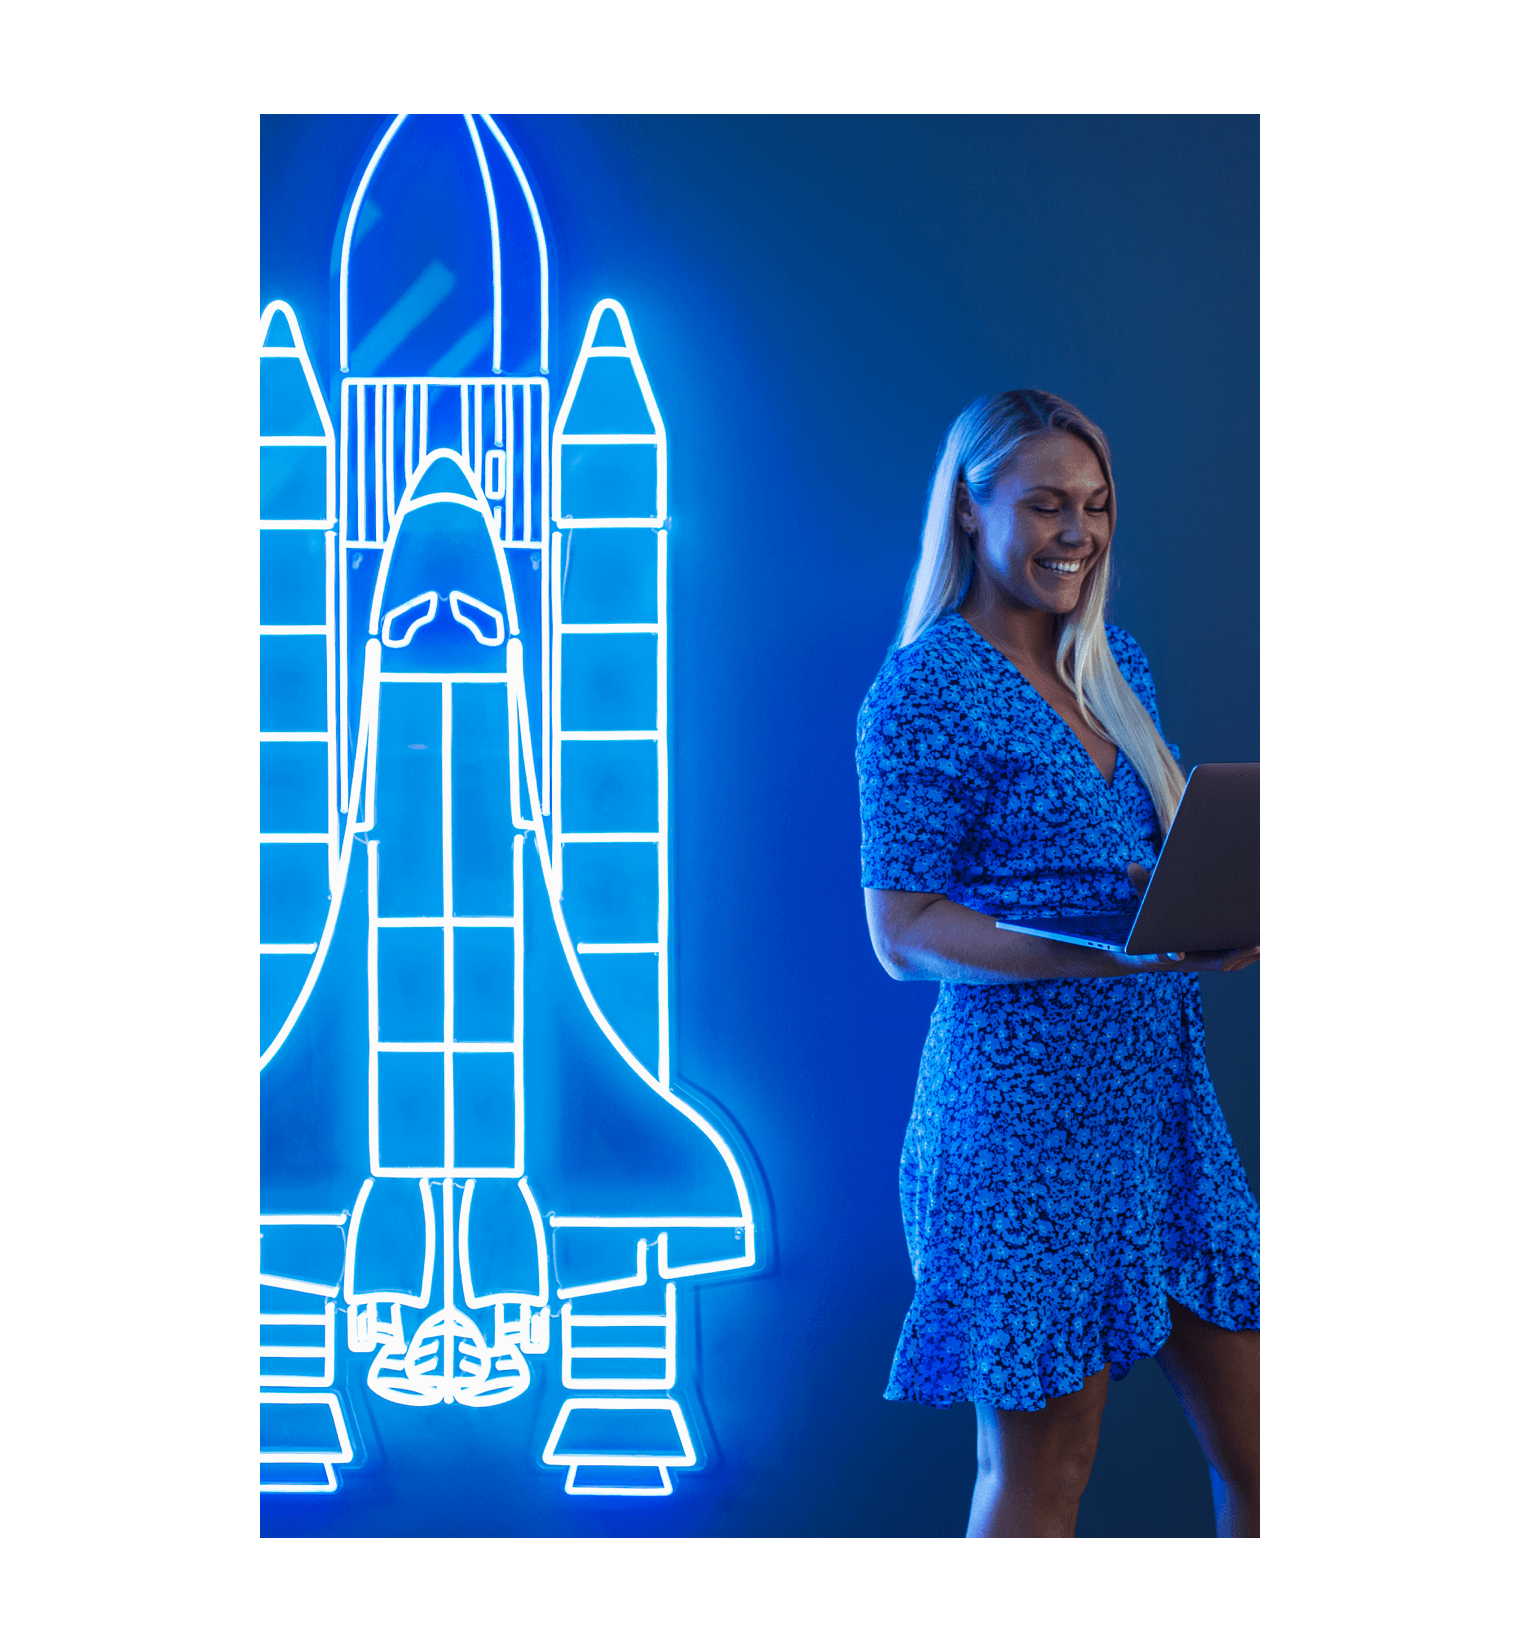 Lunar employee and spaceship in neon